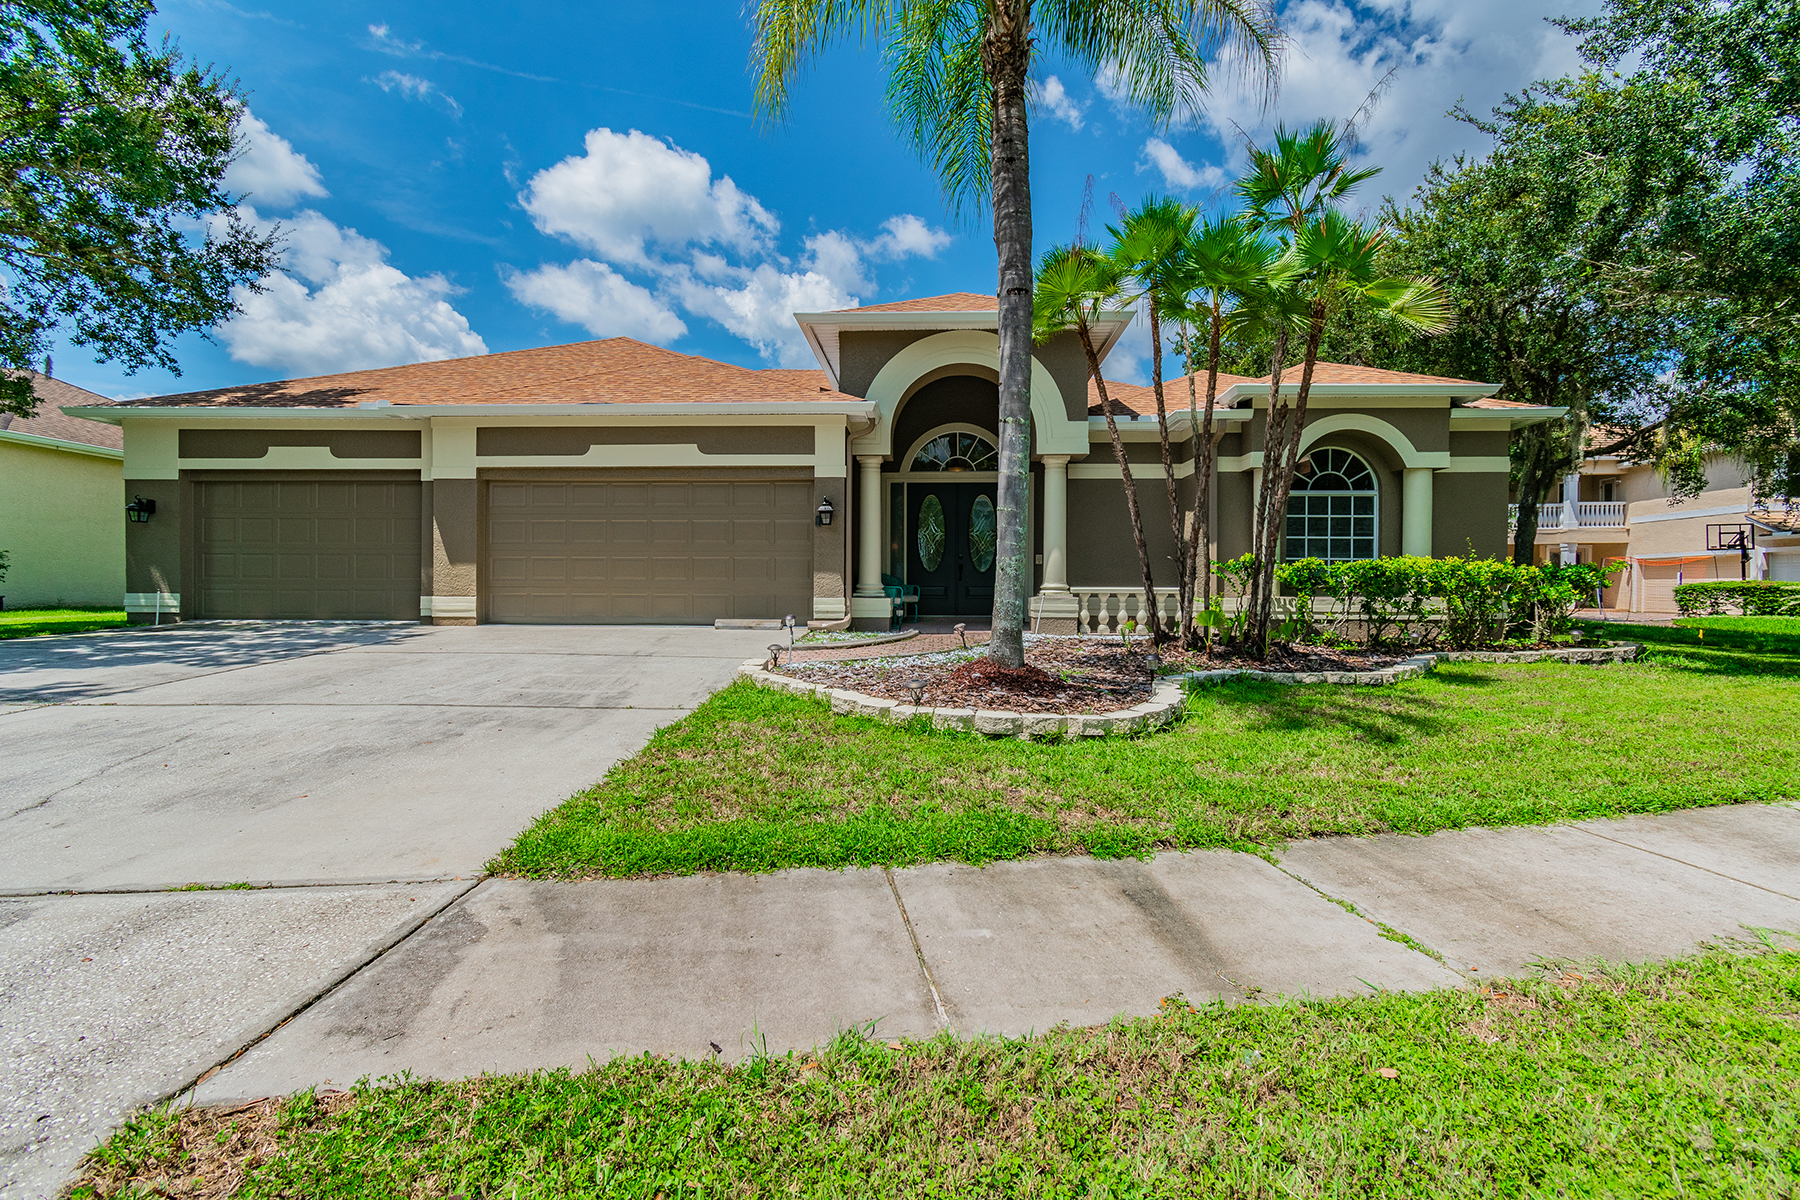 Single Family Homes for Sale at LUTZ 19106 Harbor Cove Ct, Lutz, Florida 33558 United States